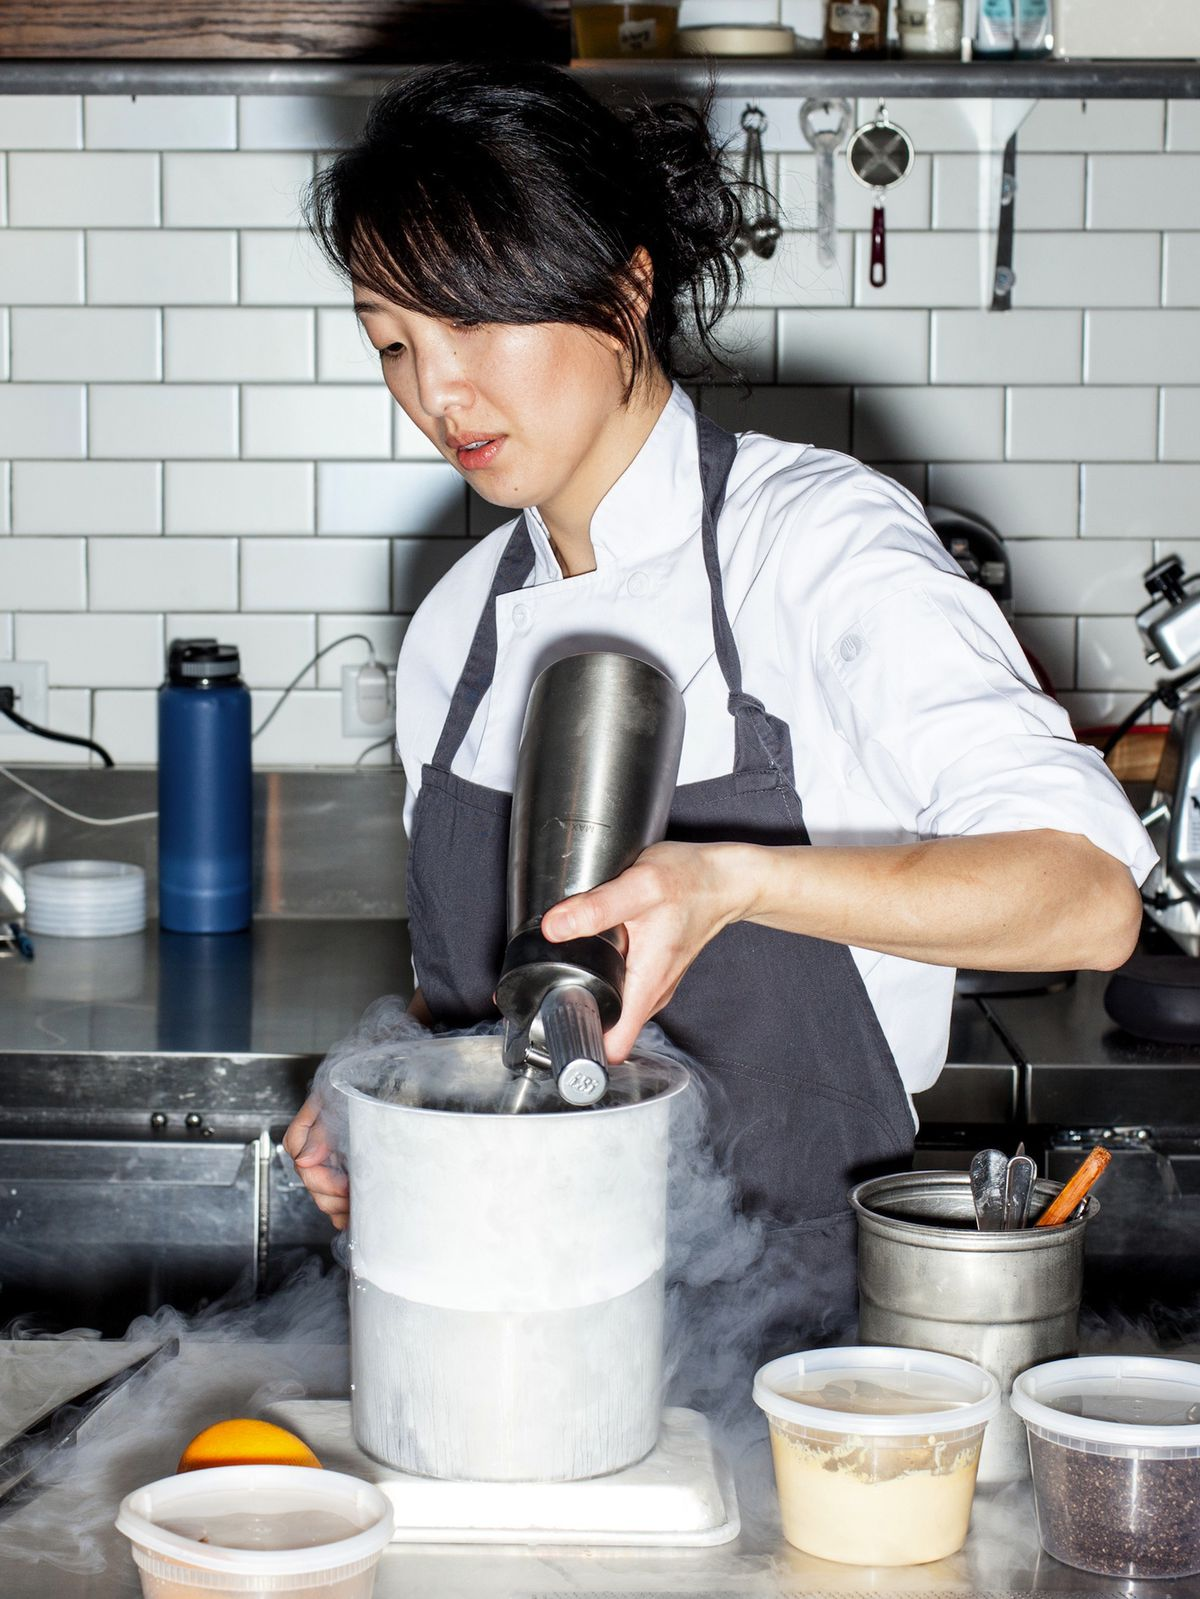 An Asian woman chef in a kitchen.